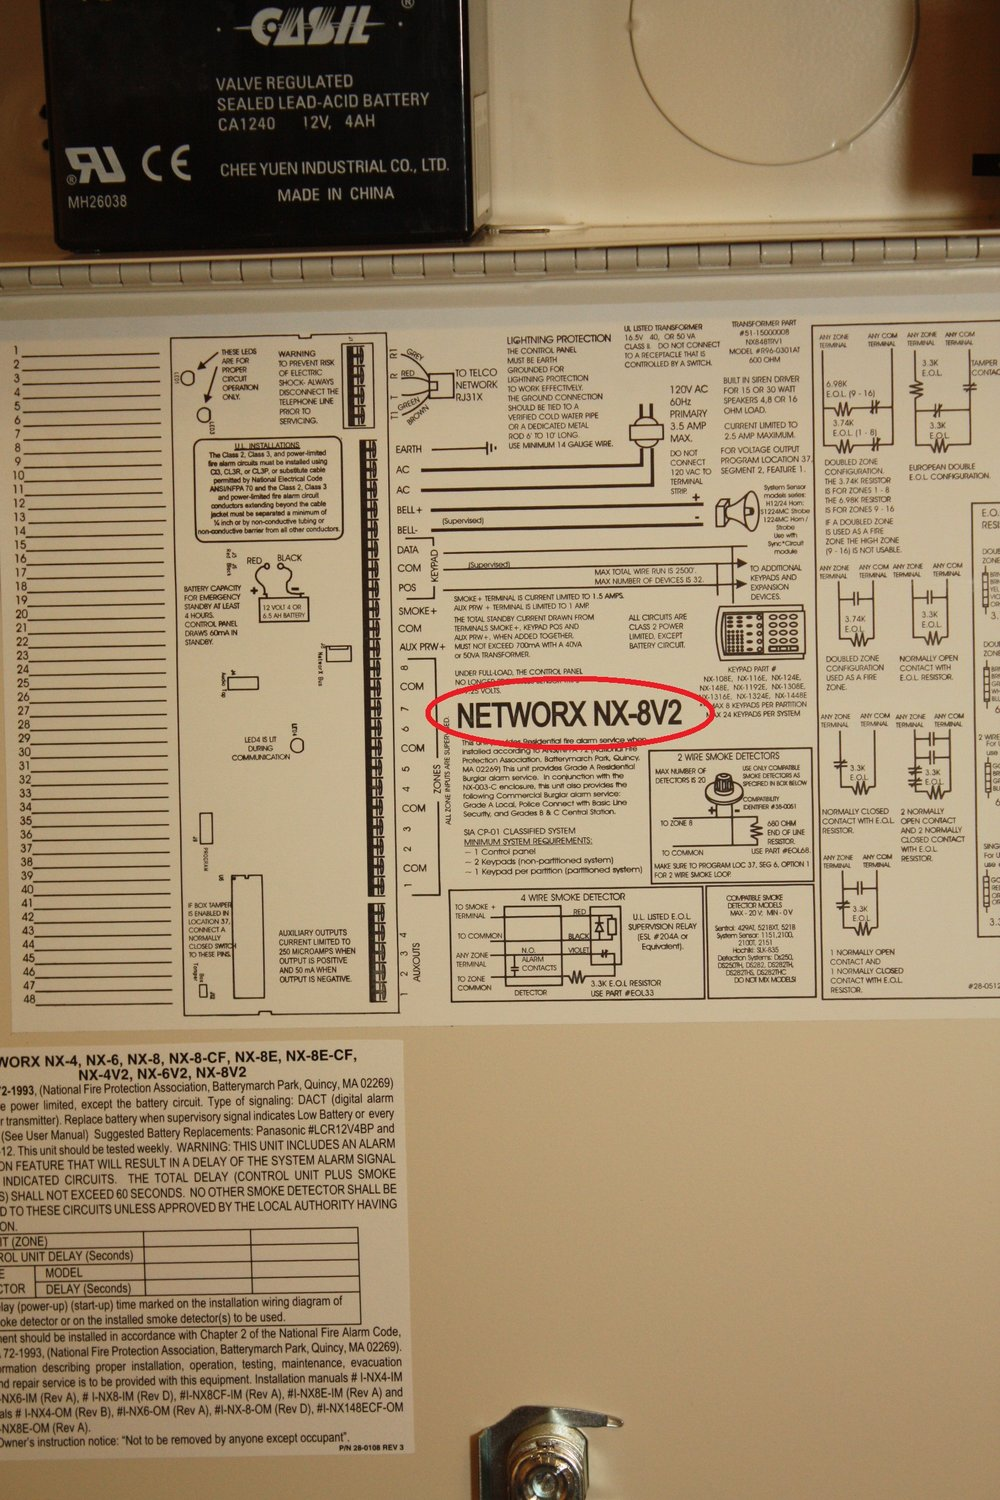 Hookup panel diagram for the Caddex NX 1316e LED alarm system showing the location of the serial number - NCA Alarms Nashville TN